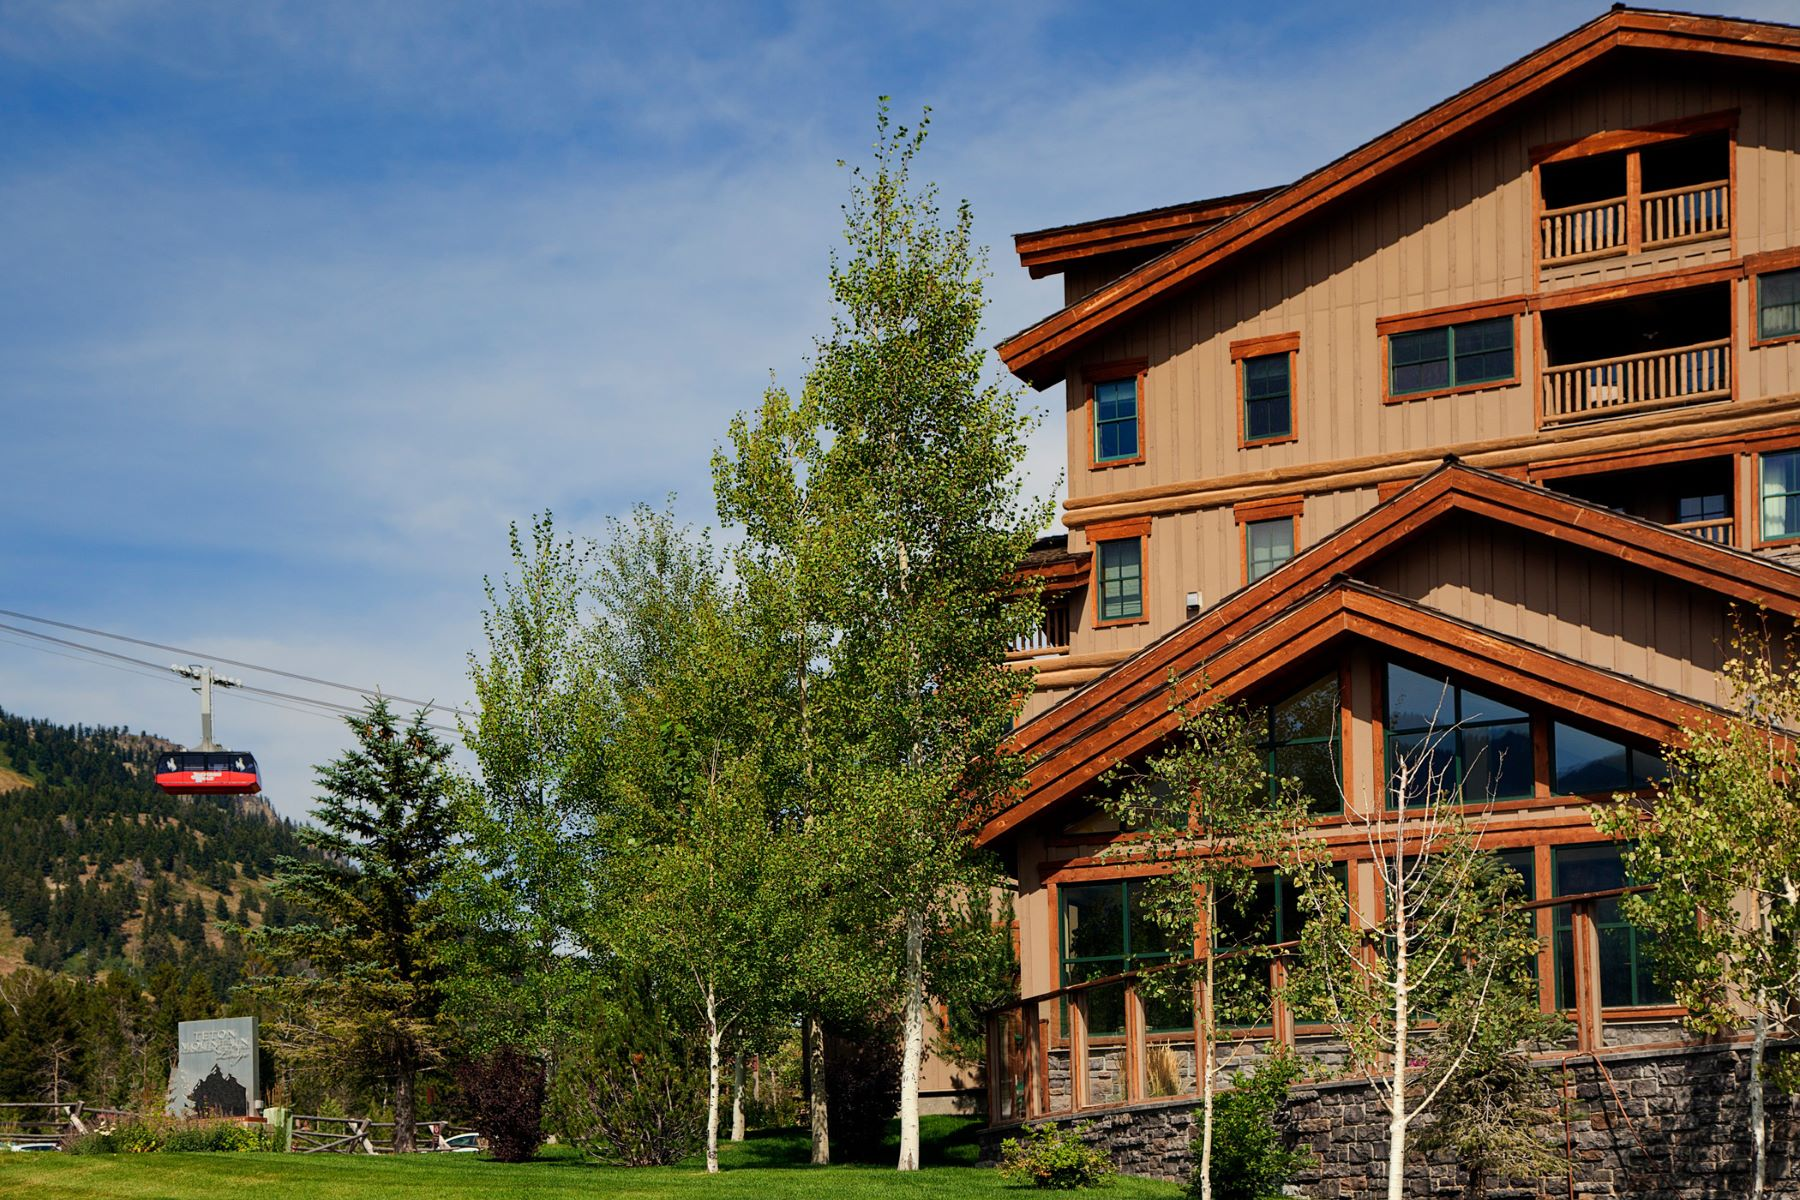 Condominium for Sale at Slopeside in Teton Village 3385 W. Village Drive unit 327/329, Teton Village, Wyoming, 83025 Jackson Hole, United States